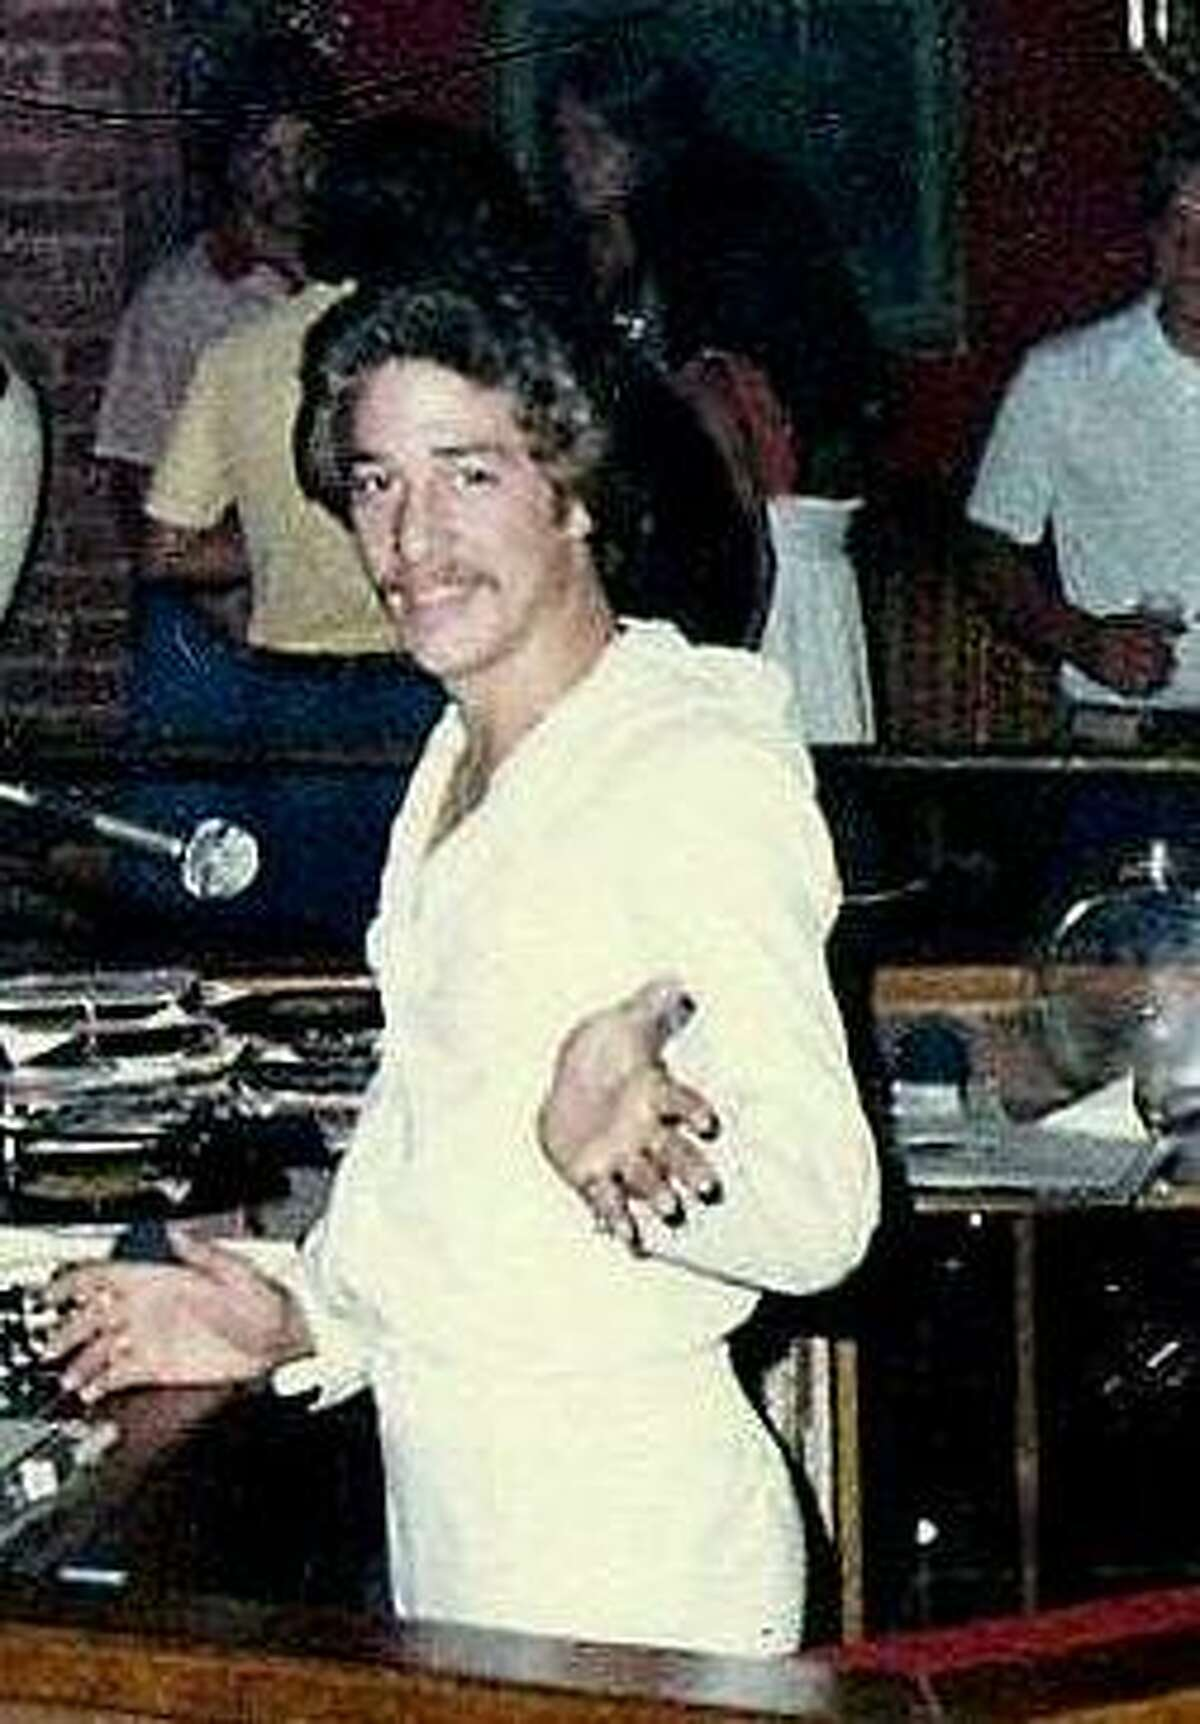 Late '70s photo of Tito Morales, San Antonio disco DJ.